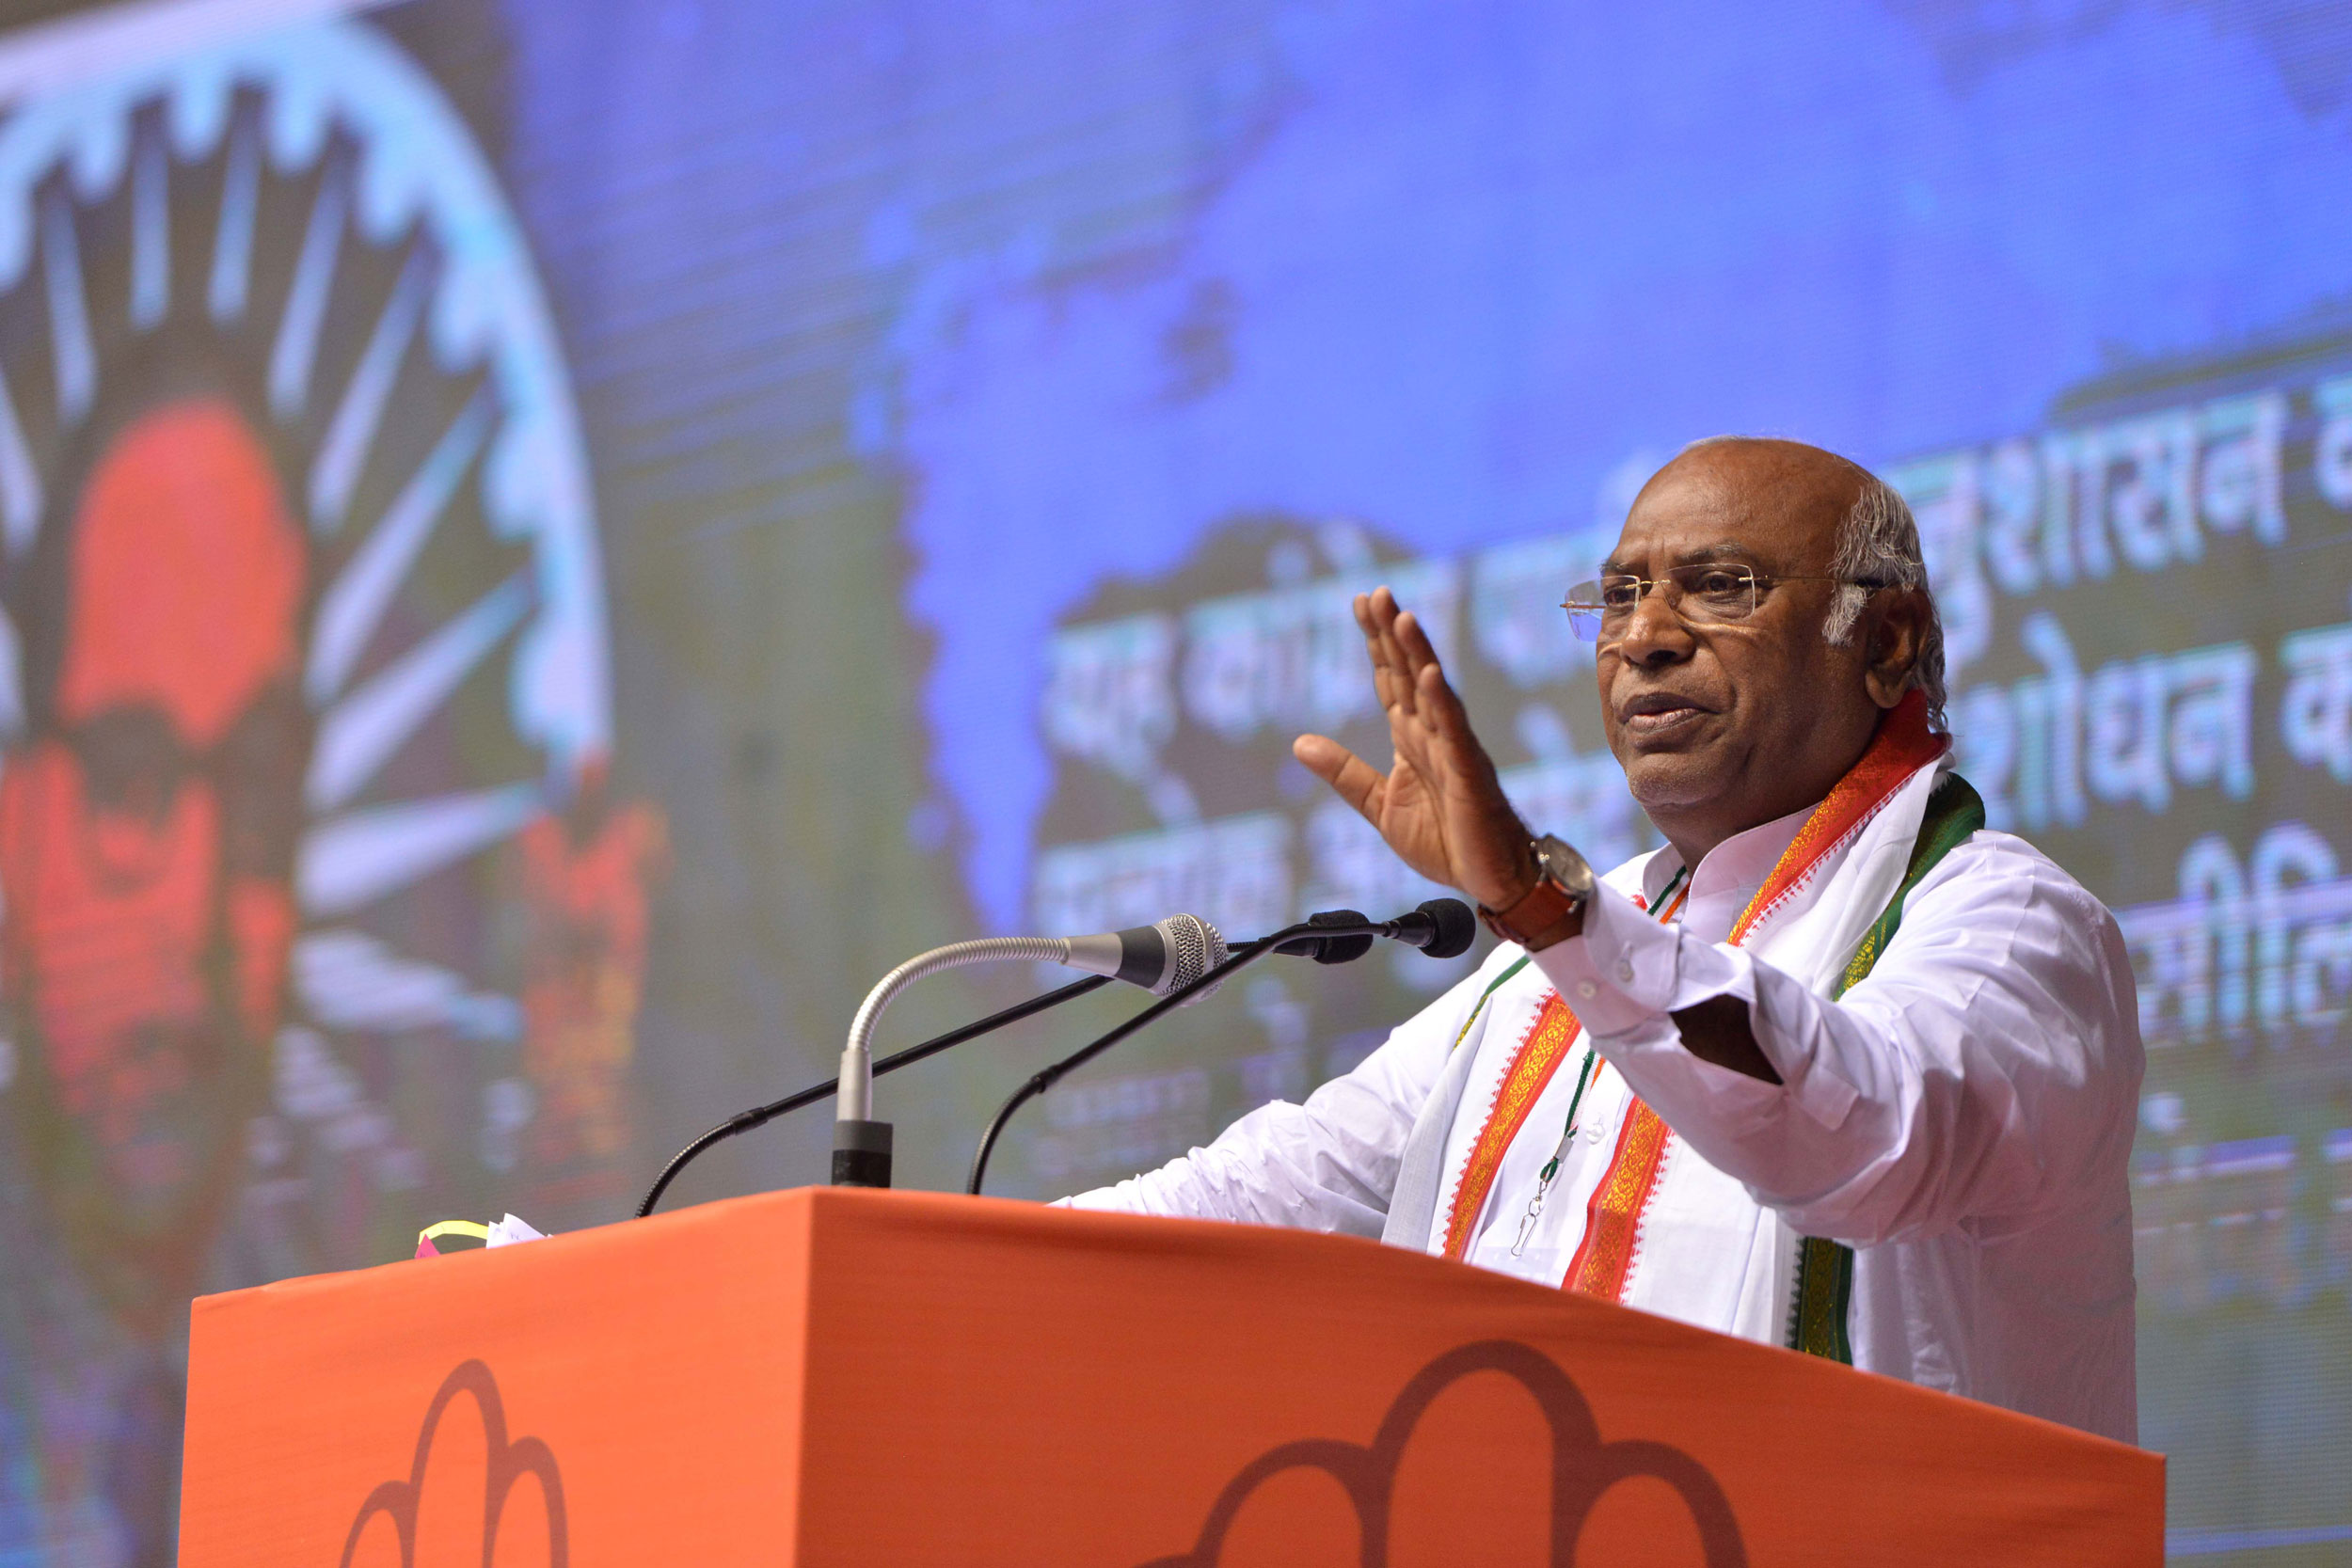 Mallikarjun Kharge spoke against the backdrop of the unfolding developments in Karnataka where the Congress-Janata Dal Secular alliance is struggling to survive but he also referred to the chain of defections to the BJP in Bengal.